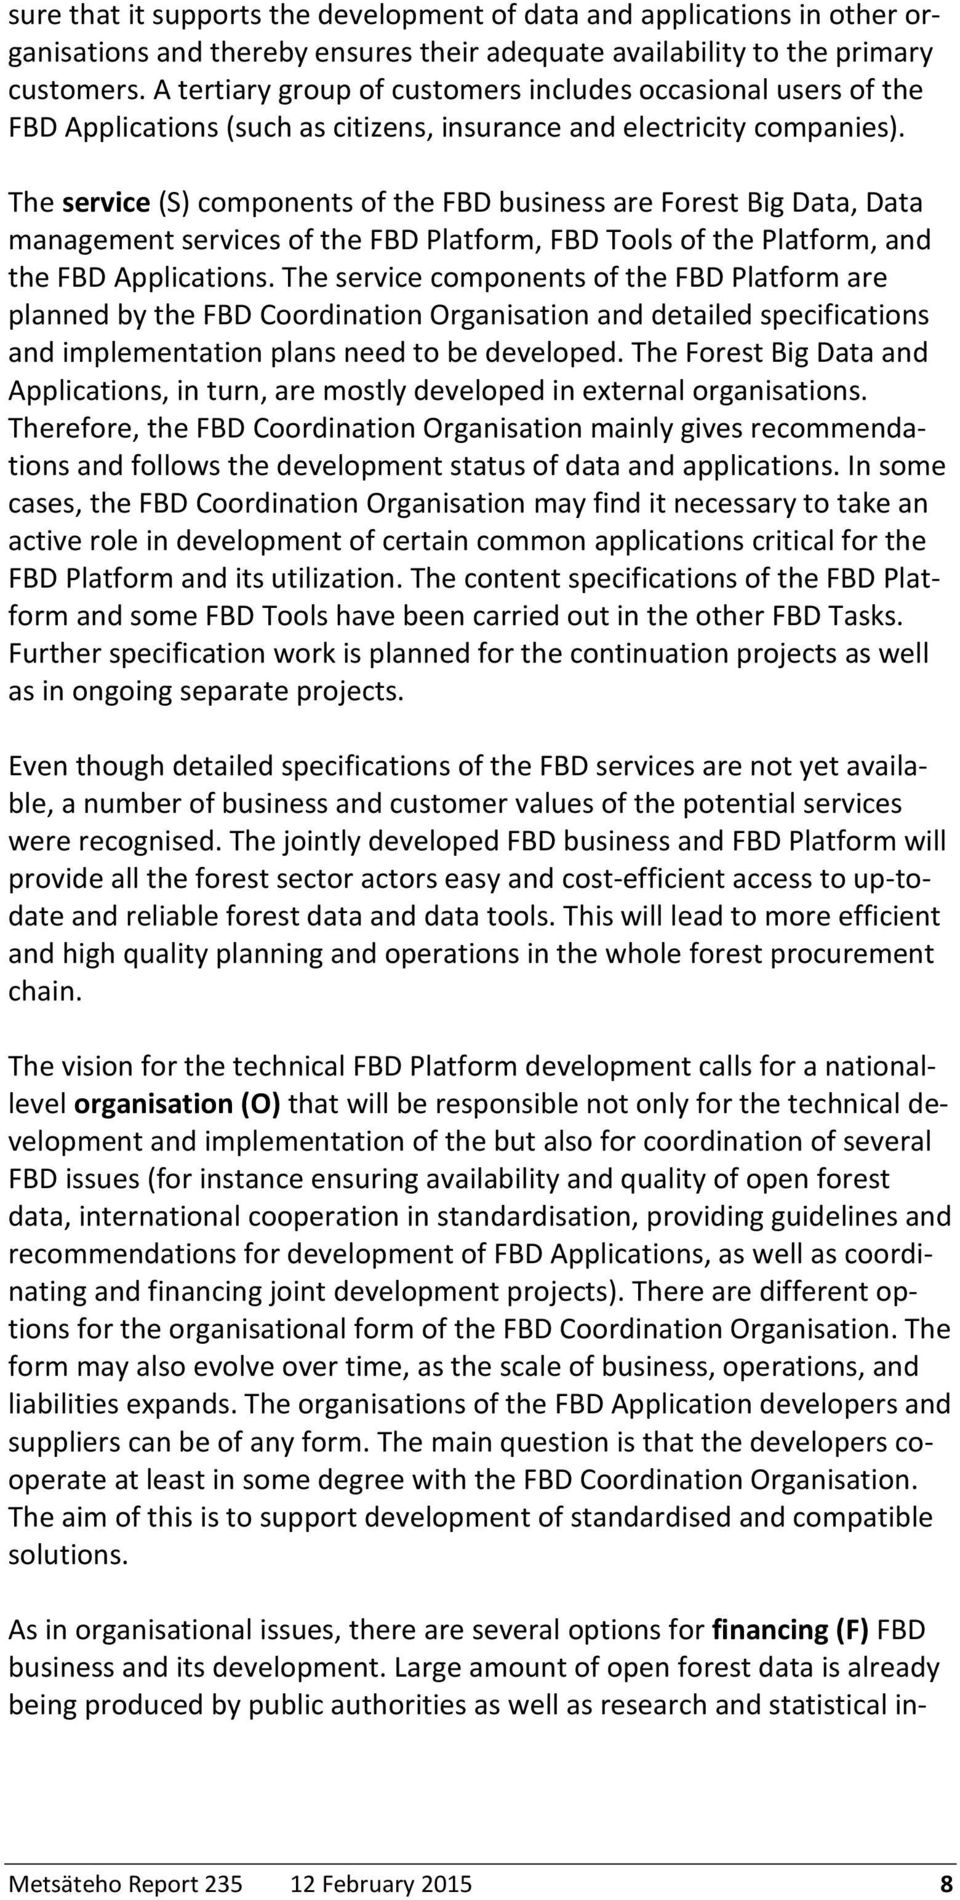 The service (S) components of the FBD business are Forest Big Data, Data management services of the FBD Platform, FBD Tools of the Platform, and the FBD Applications.